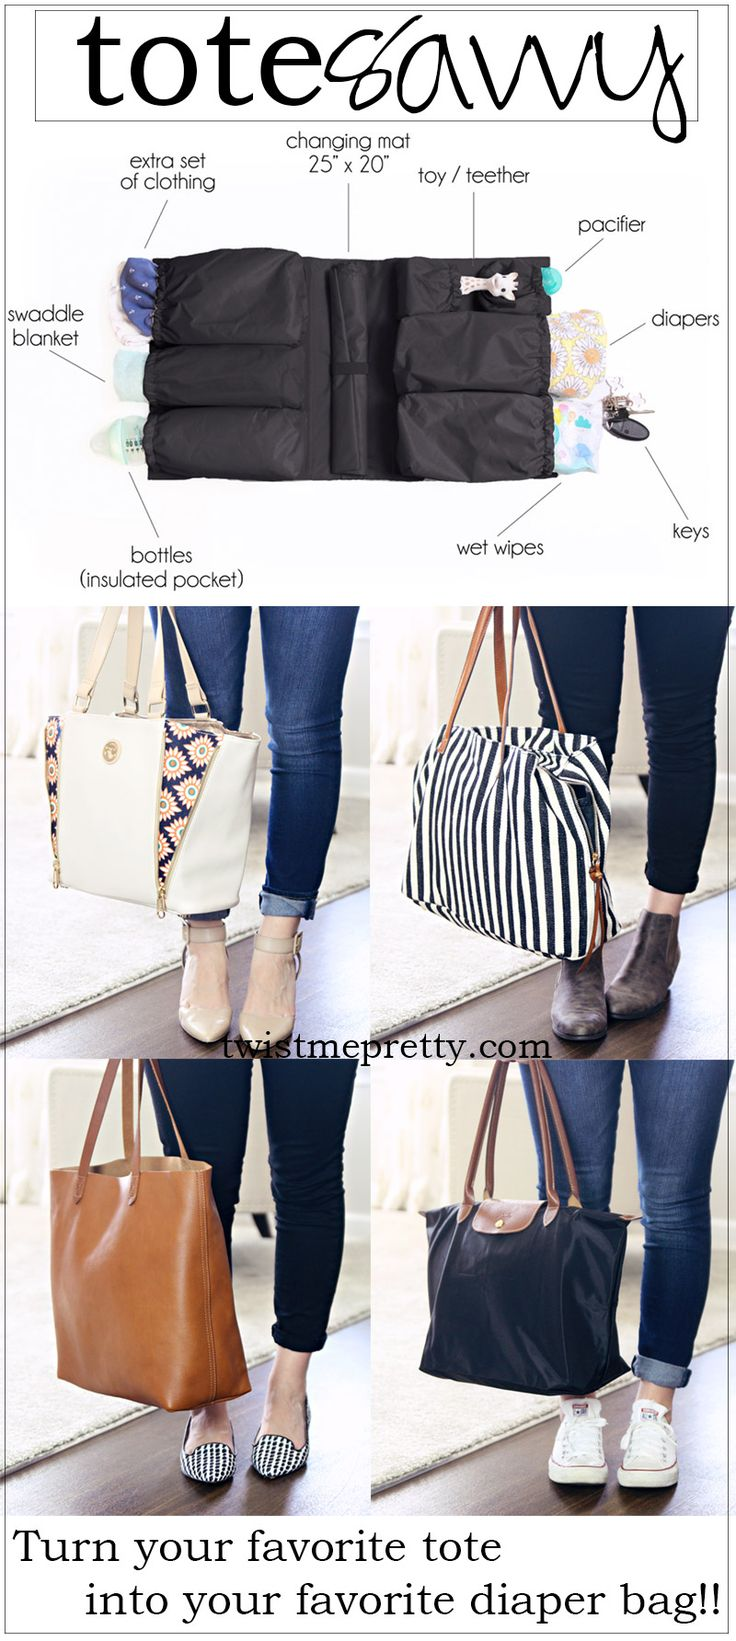 Turn your favorite tote into your favorite diaper bag with the tote savvy!